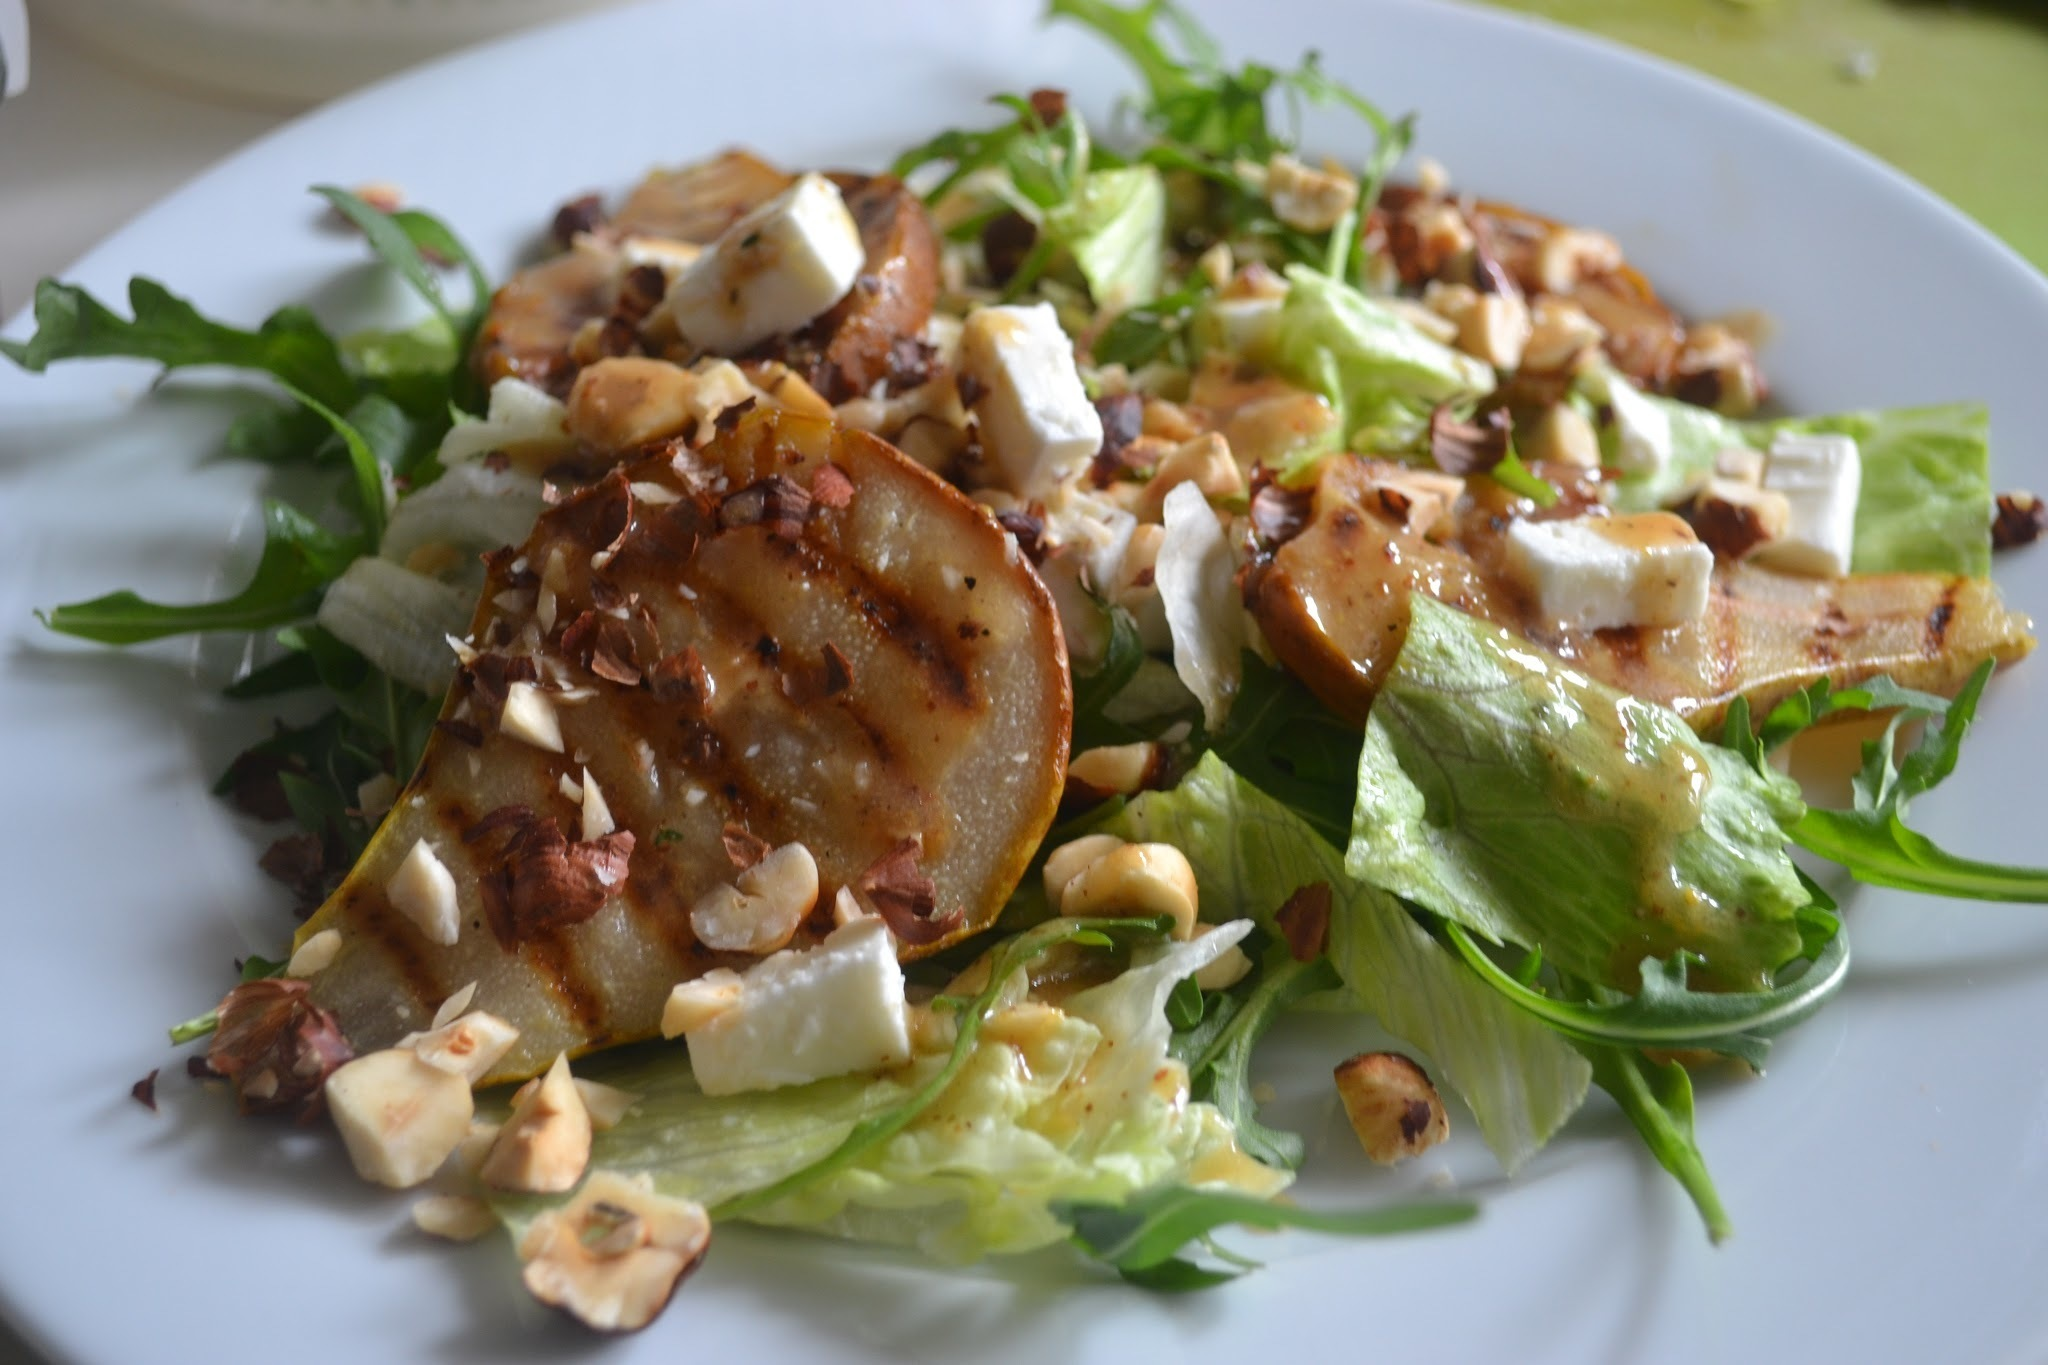 Salade met geroosterde peer, hazelnoot en feta - Salad with roasted pears, hazelnuts and feta (GF-SF)